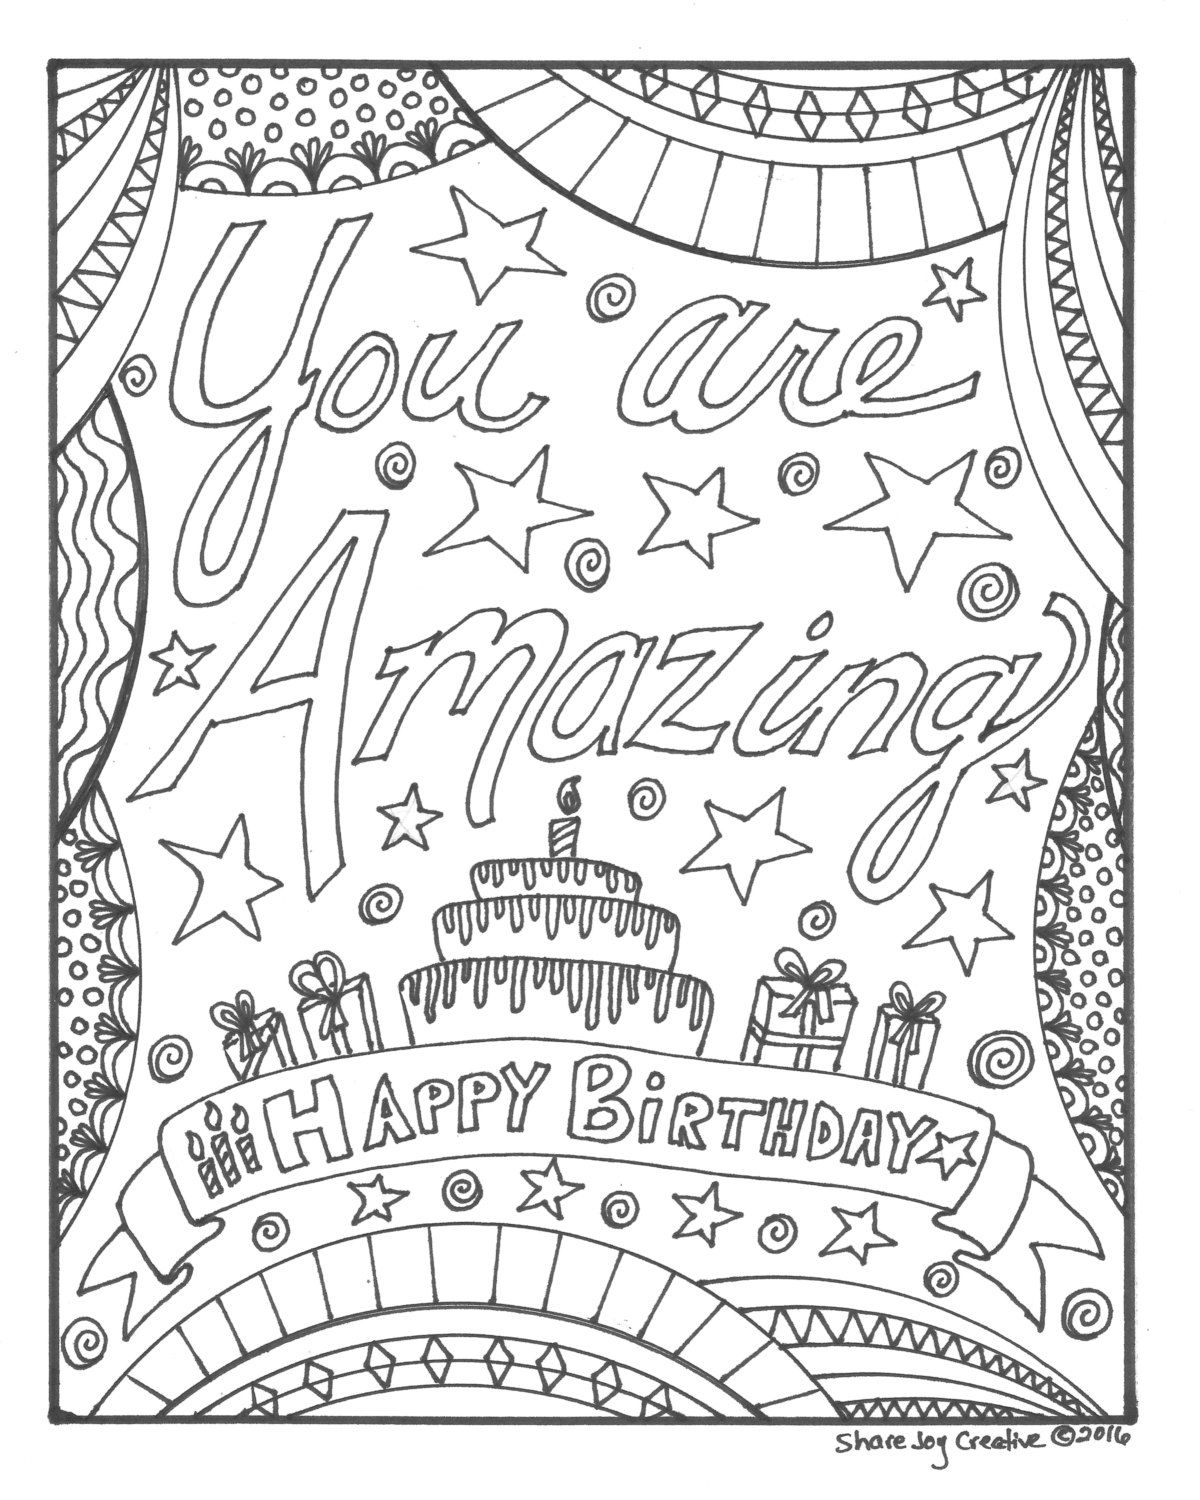 Happy Birthday Coloring Page You Are Amazing Printable Etsy Happy Birthday Coloring Pages Birthday Coloring Pages Happy Birthday Printable